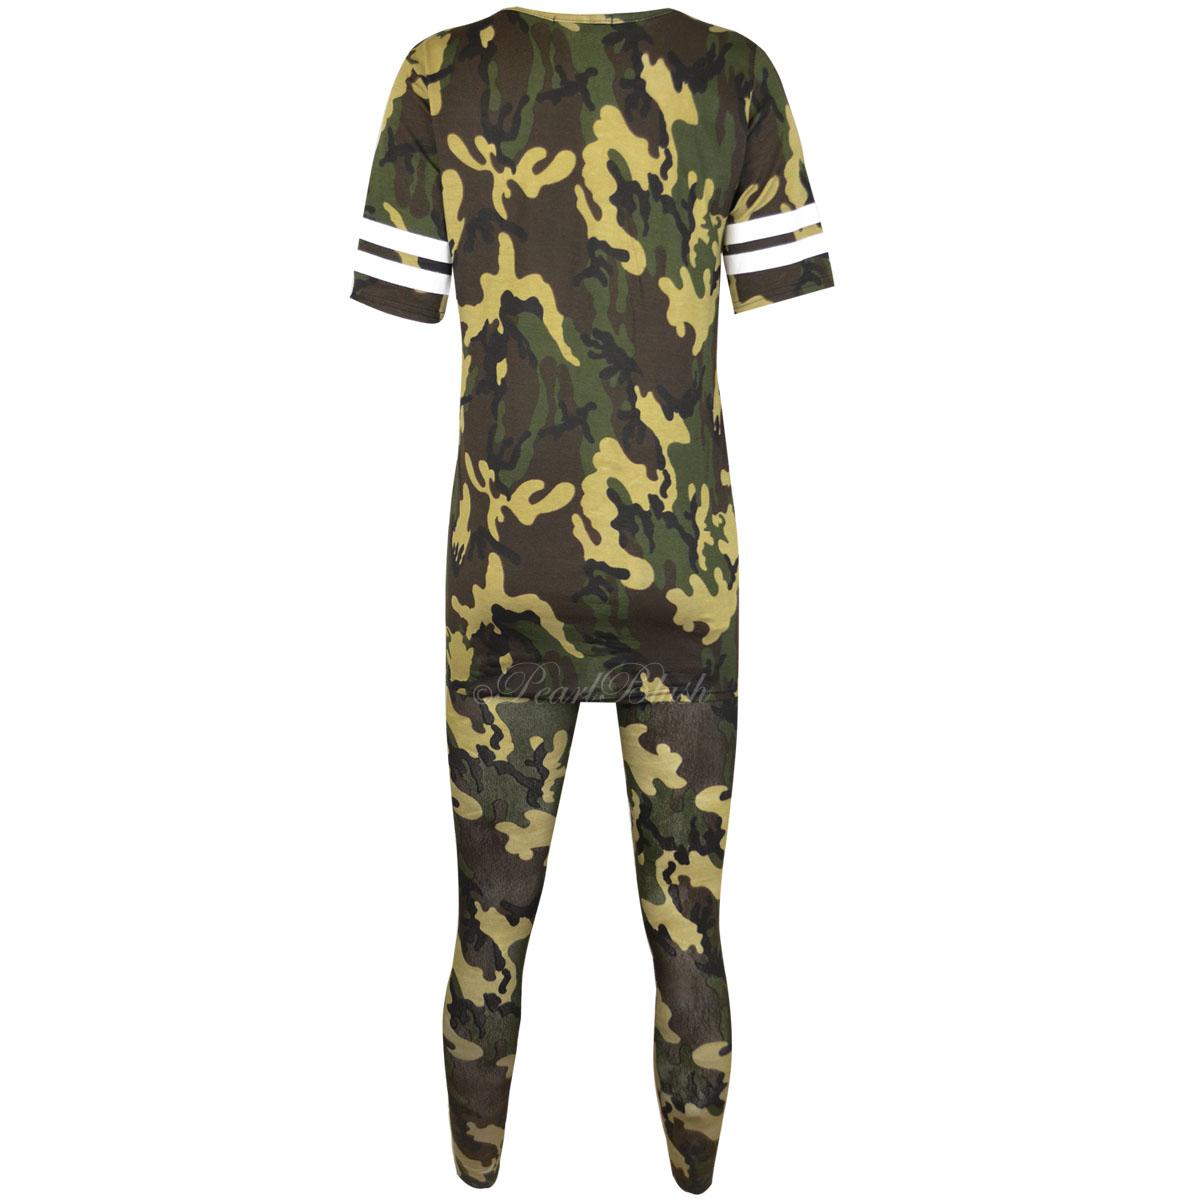 Book Of Womens Camo Lounge Pants In India By William